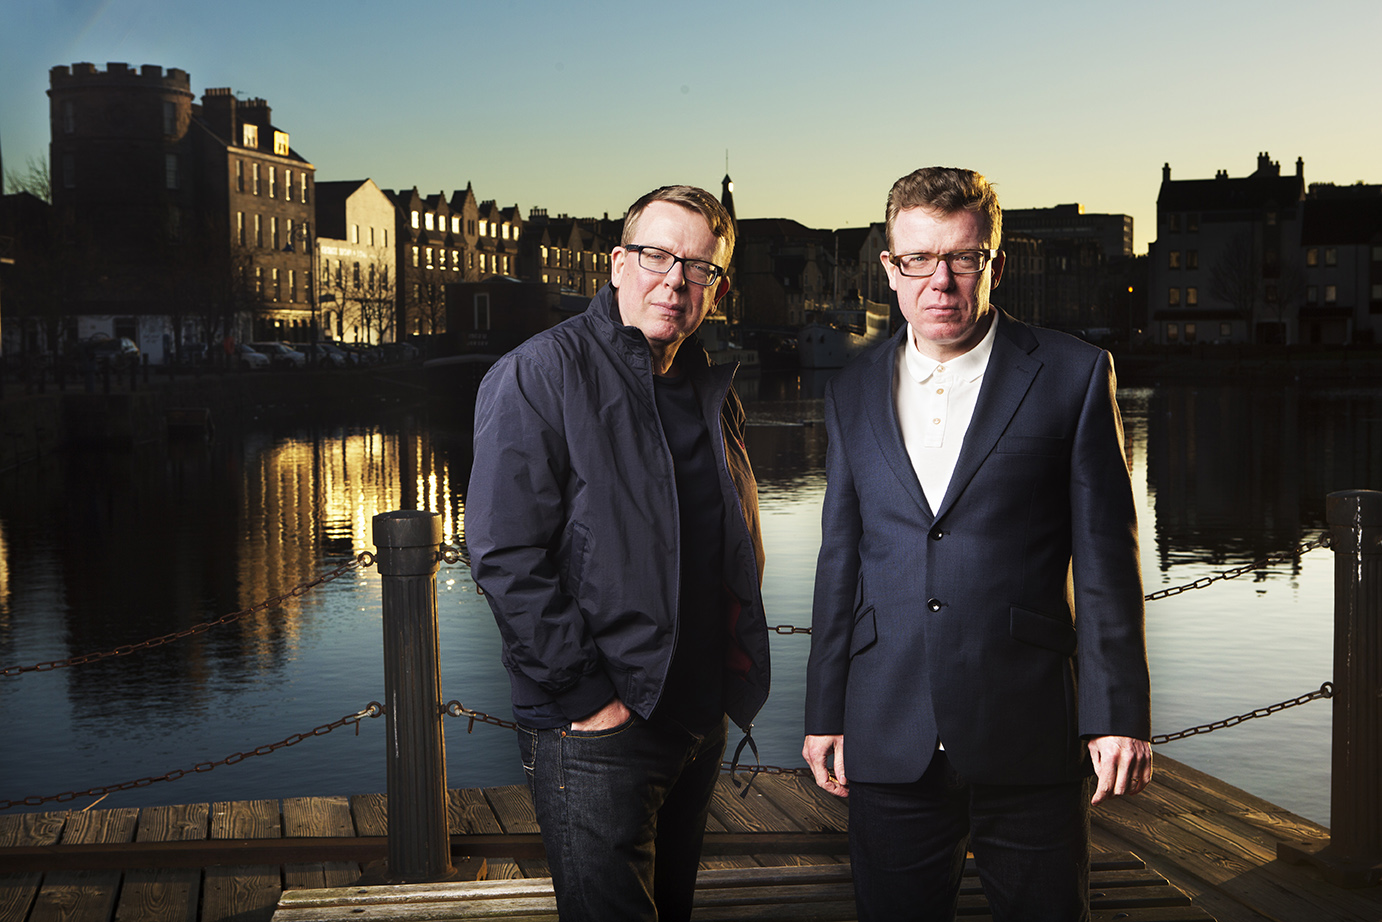 Craig and Charlie Reid of Scotland's Proclaimers will play Buffalo's Waiting Room on Sept. 23. (Photo courtesy Murdo Macleod)